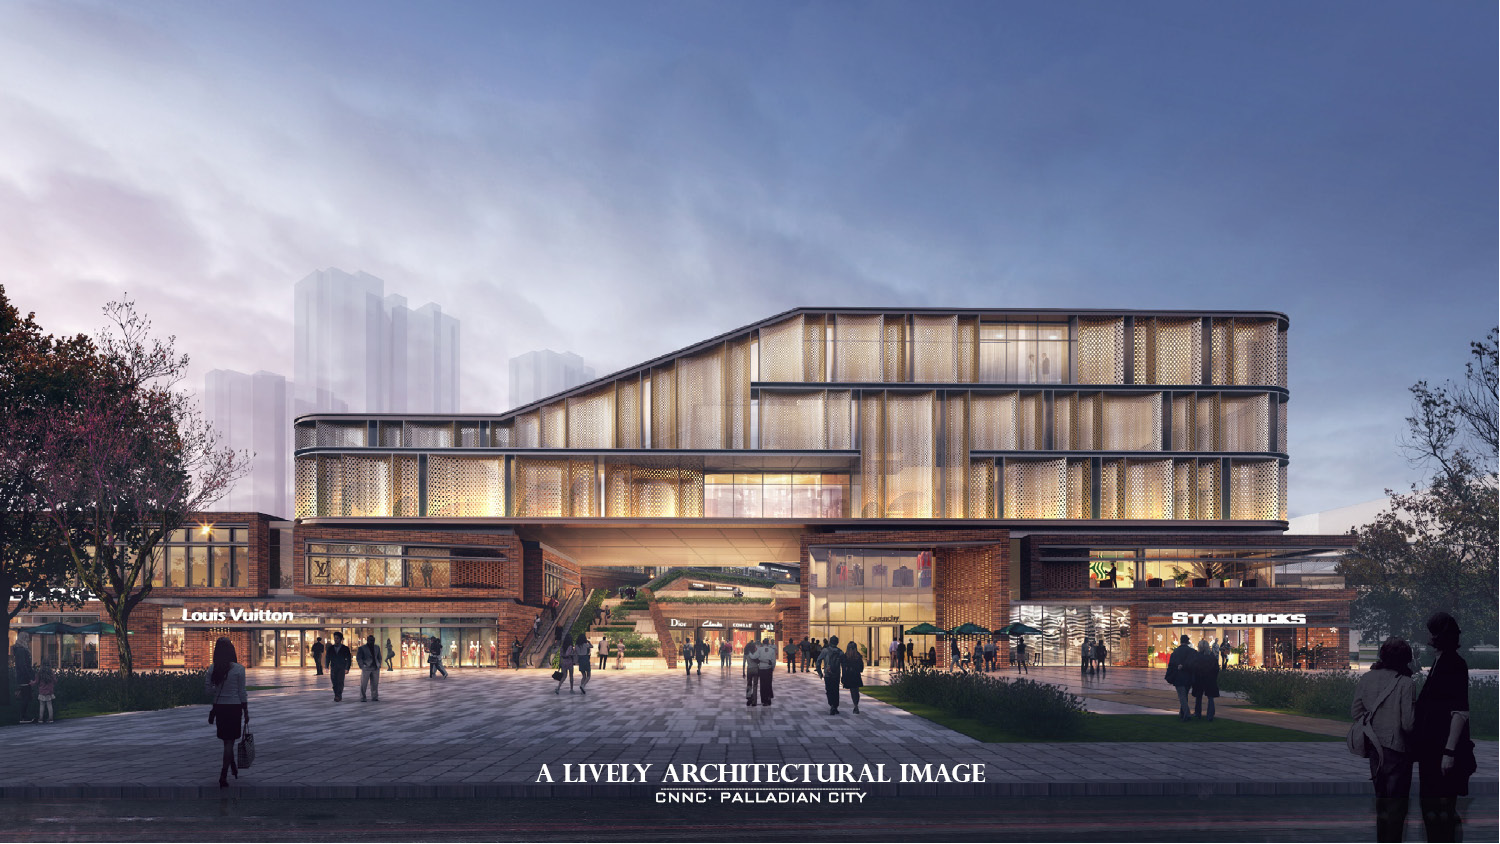 RENDERING - A LIVELY ARCHITECTURE IMAGE Yan Li